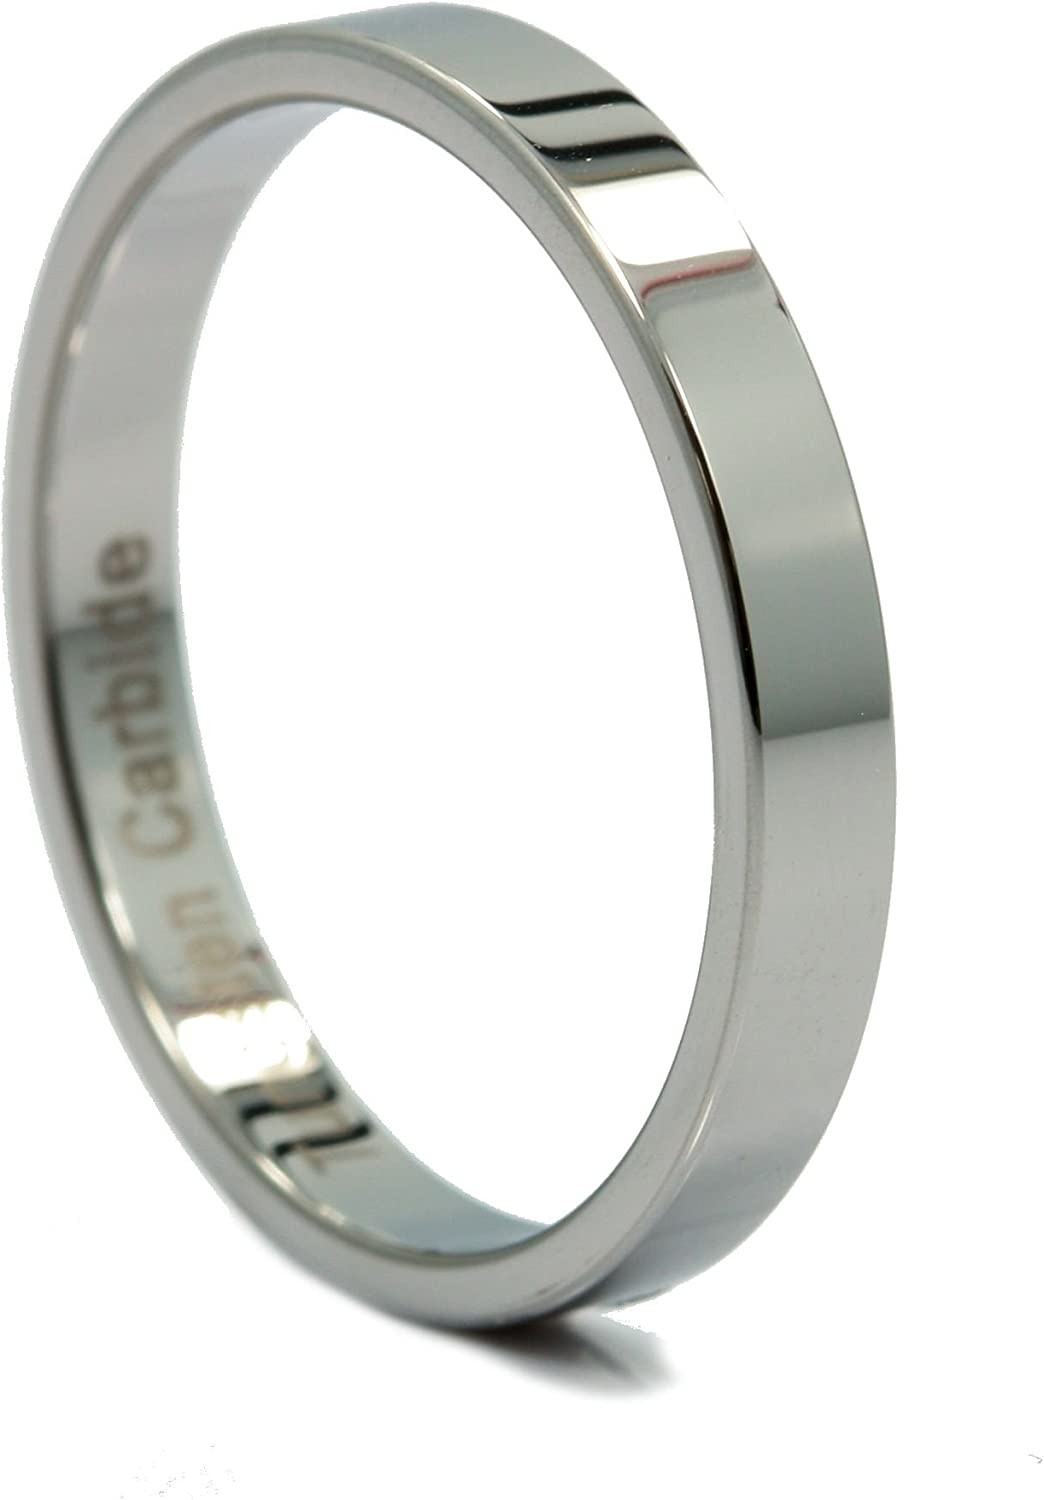 MJ Metals Jewelry 3mm Flat Pipe Cut Tungsten Carbide Mirror Polished Wedding Ring Band Size 7